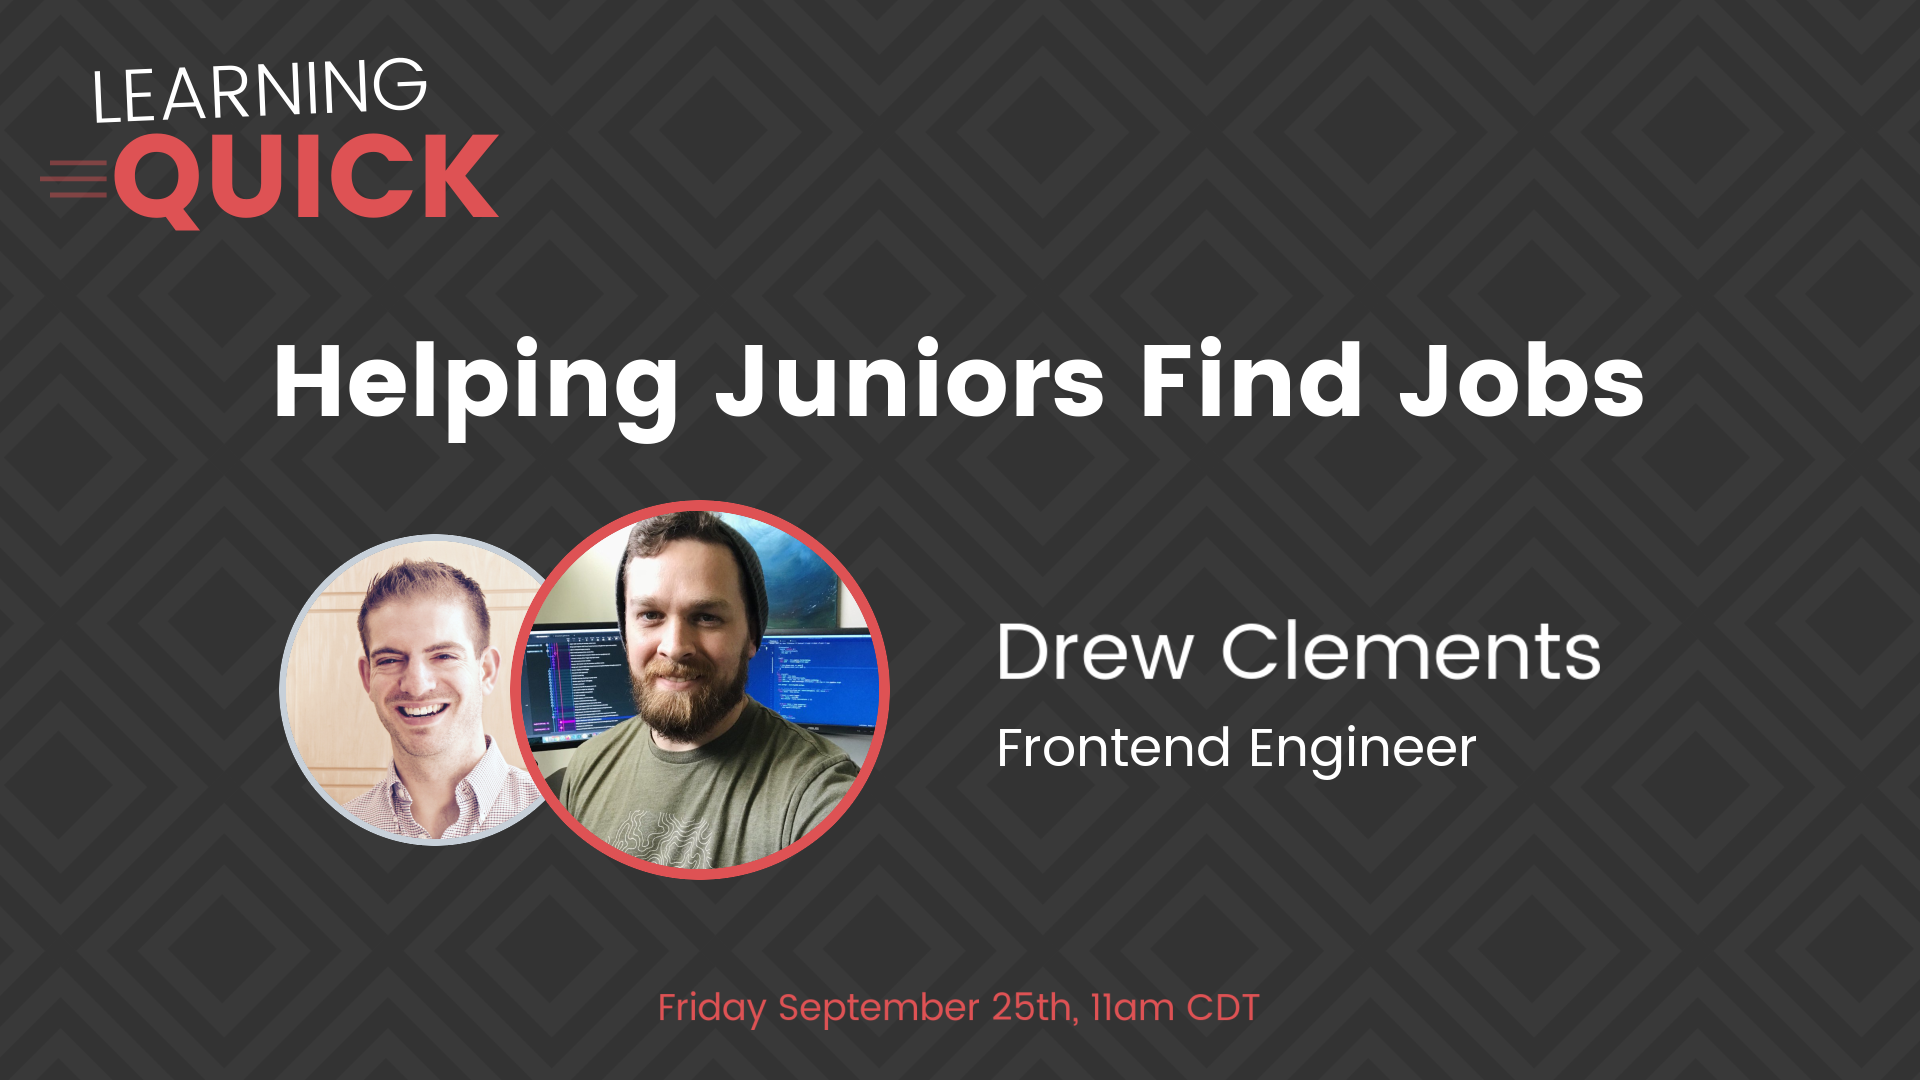 Helping Juniors Find Jobs with Drew Clements